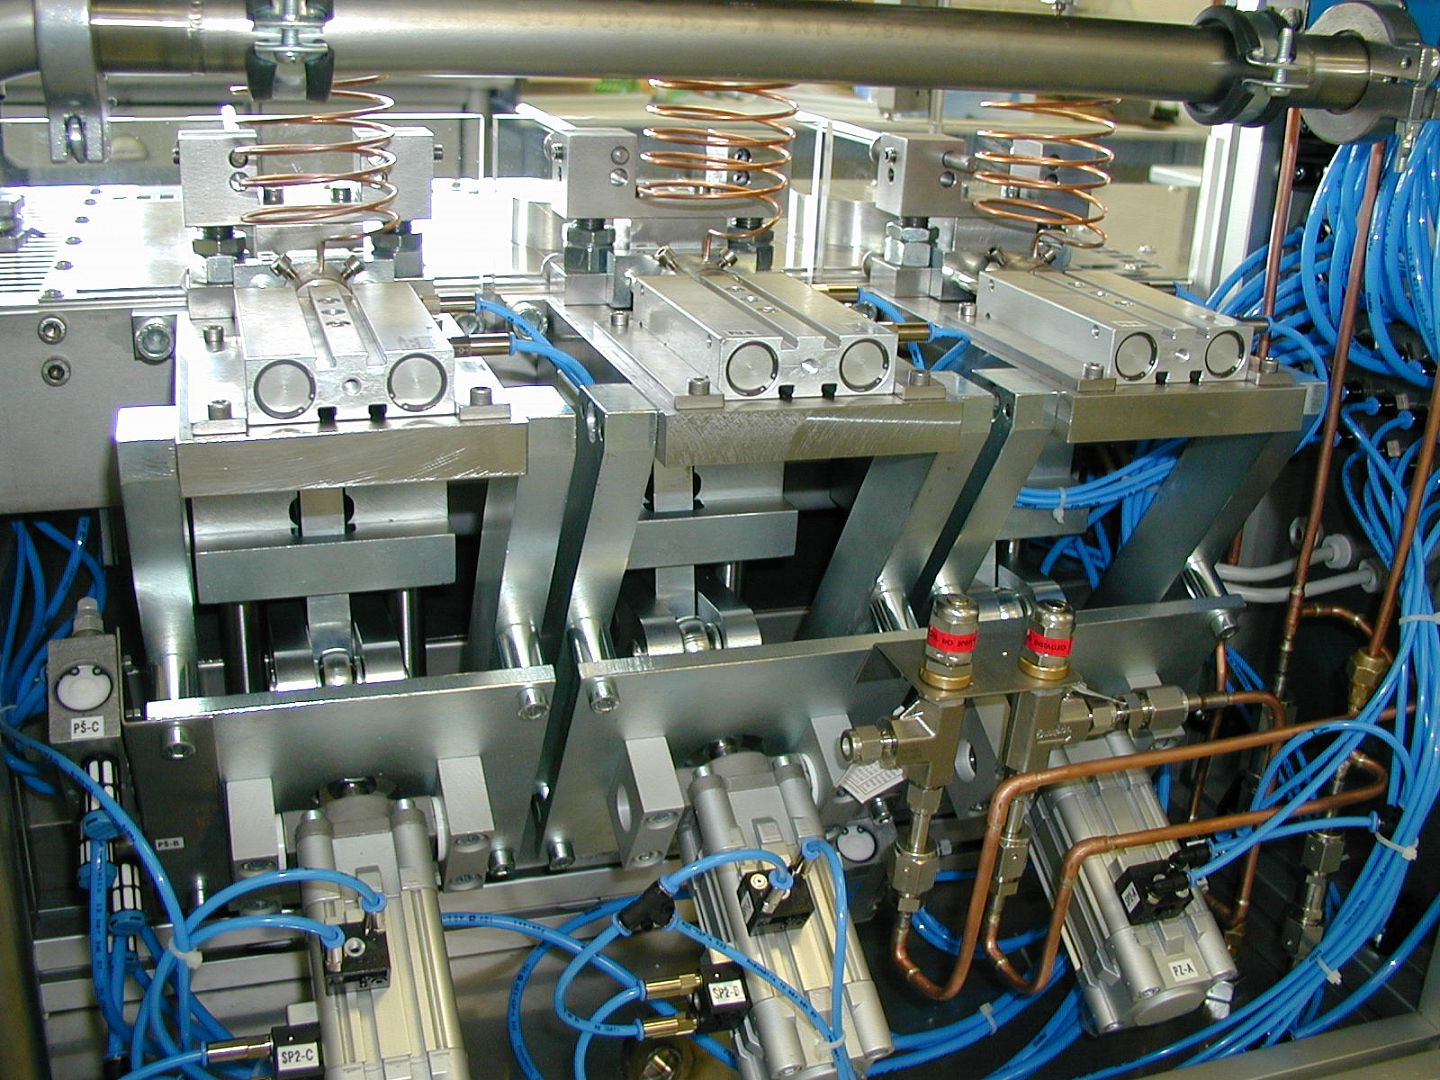 Reference Emerson Pzp Komplet As Wiring Harness Design And Manufacture Of Automatic Testers For Serial Production Cooling Process Components Eg Thermic Expansion Valves Similar